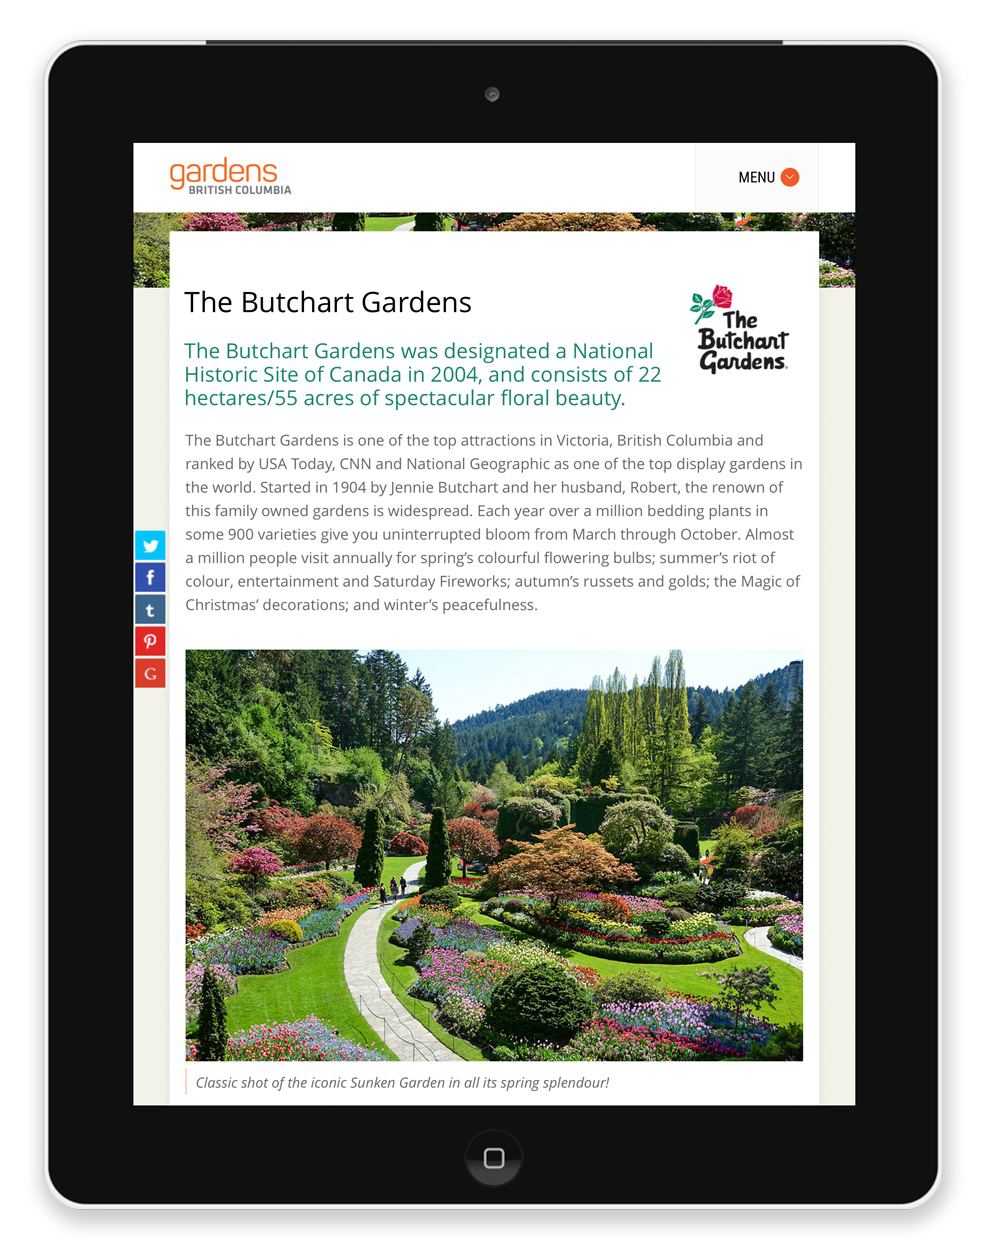 The Butchart Gardens Member Page displayed on an iPad.